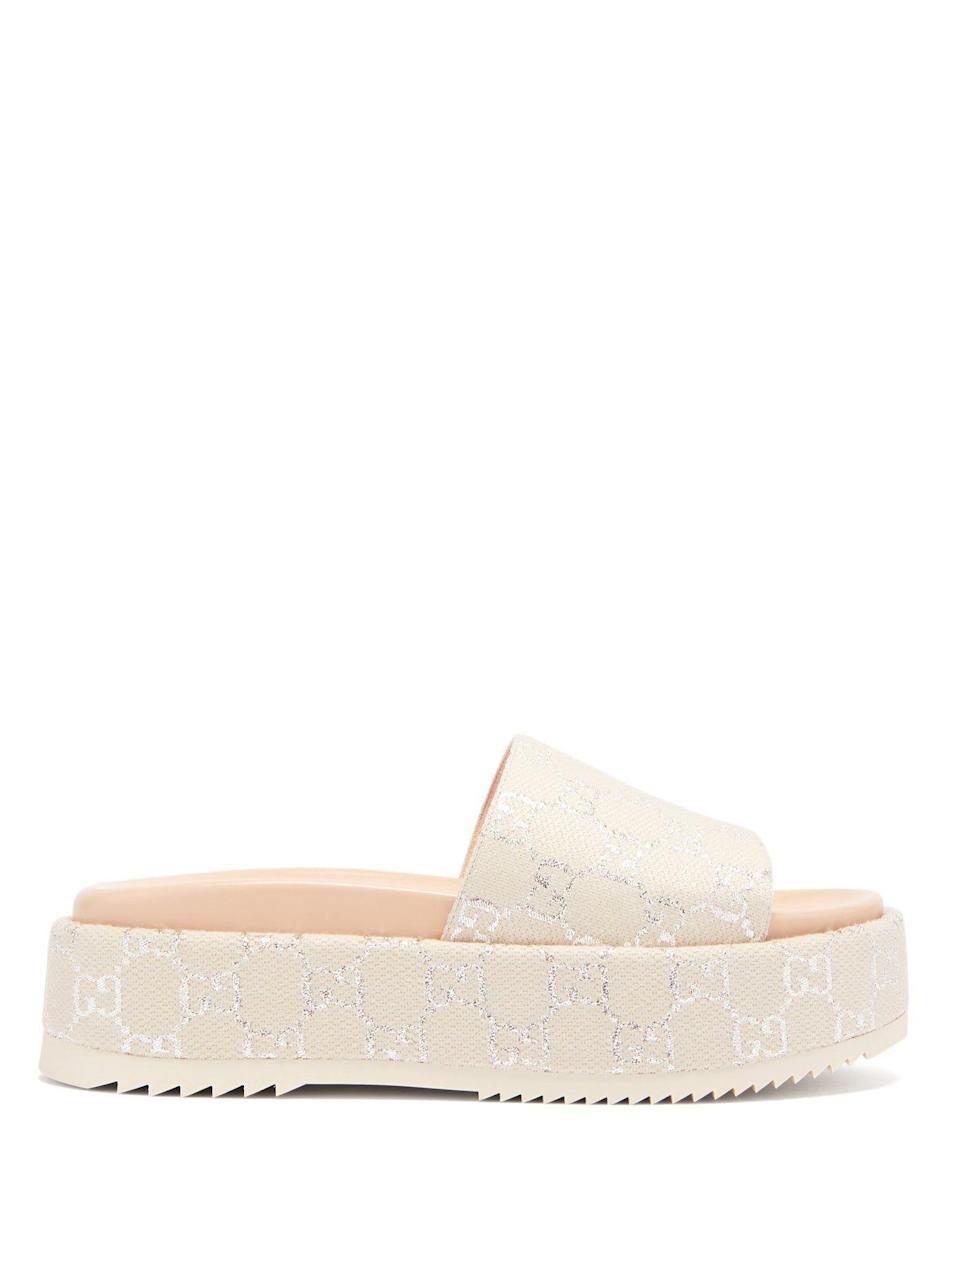 """<p><strong>Gucci</strong></p><p>matchesfashion.com</p><p><strong>$595.00</strong></p><p><a href=""""https://go.redirectingat.com?id=74968X1596630&url=https%3A%2F%2Fwww.matchesfashion.com%2Fus%2Fproducts%2F1360977&sref=https%3A%2F%2Fwww.harpersbazaar.com%2Fwedding%2Fbridal-fashion%2Fg36113322%2Fwedding-flats-for-brides%2F"""" rel=""""nofollow noopener"""" target=""""_blank"""" data-ylk=""""slk:SHOP NOW"""" class=""""link rapid-noclick-resp"""">SHOP NOW</a></p><p>Go for a jacquard flat-form slide to get some extra height and a little fashion girl glamour, without any discomfort. </p>"""